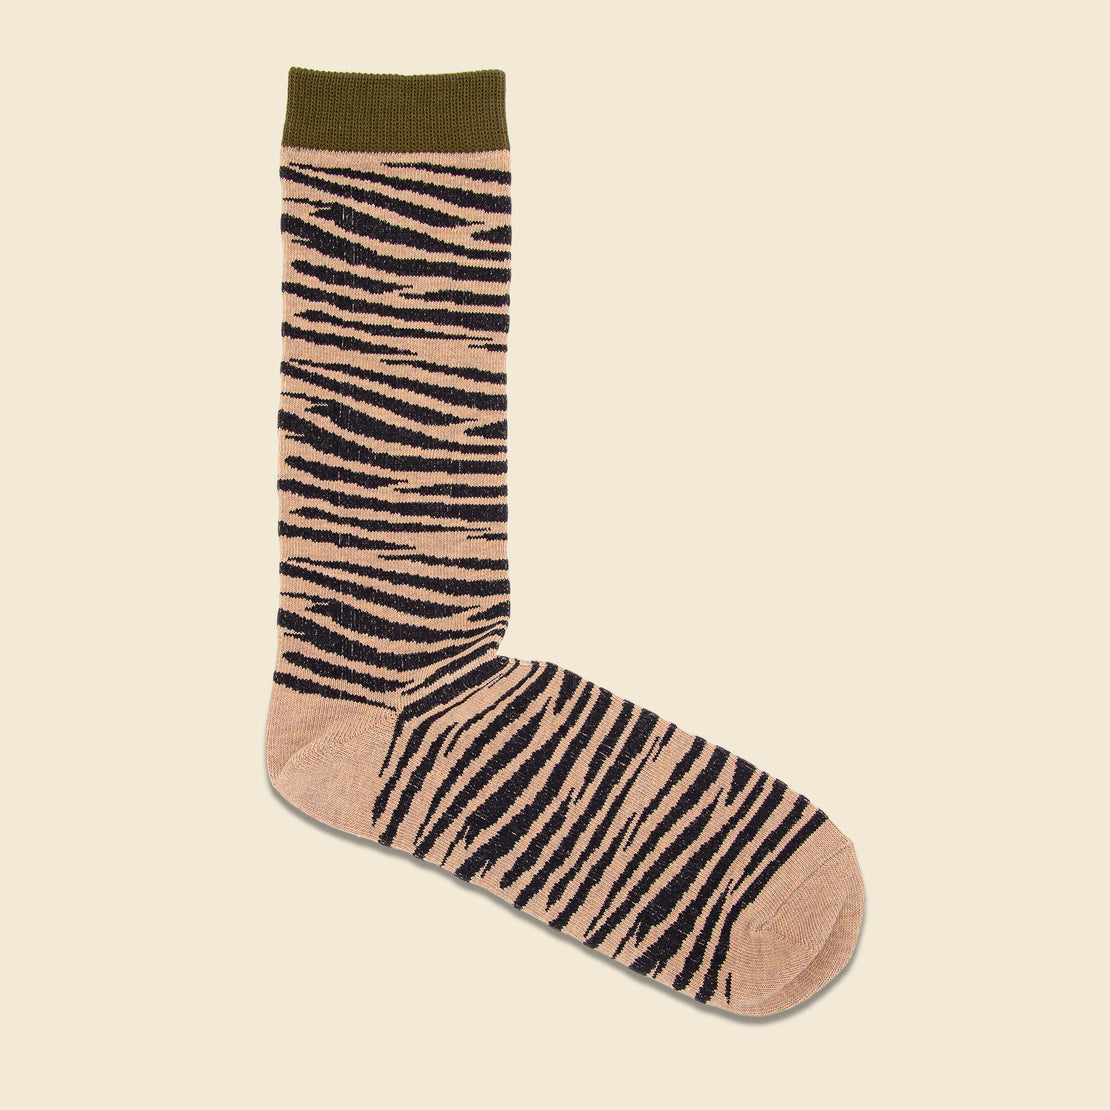 Anonymous Ism Crew Sock - Olive Zebra